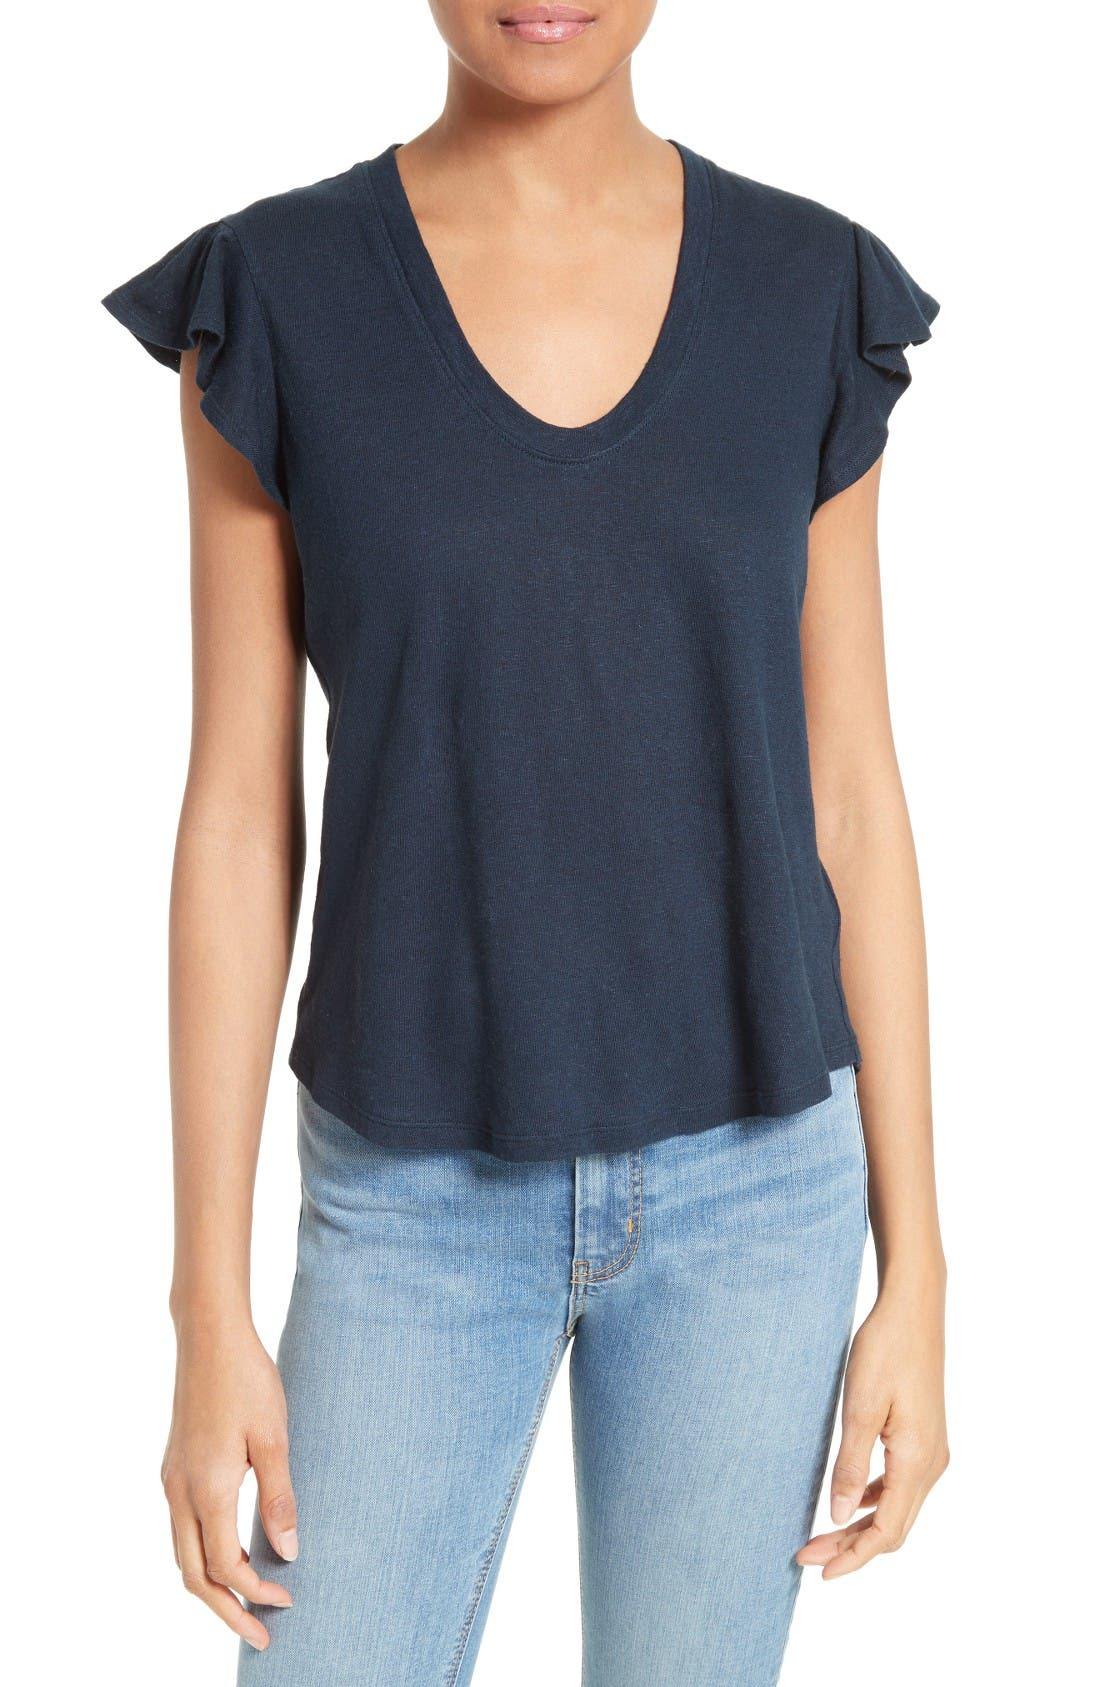 LA VIE REBECCA TAYLOR Washed Texture Jersey Tee